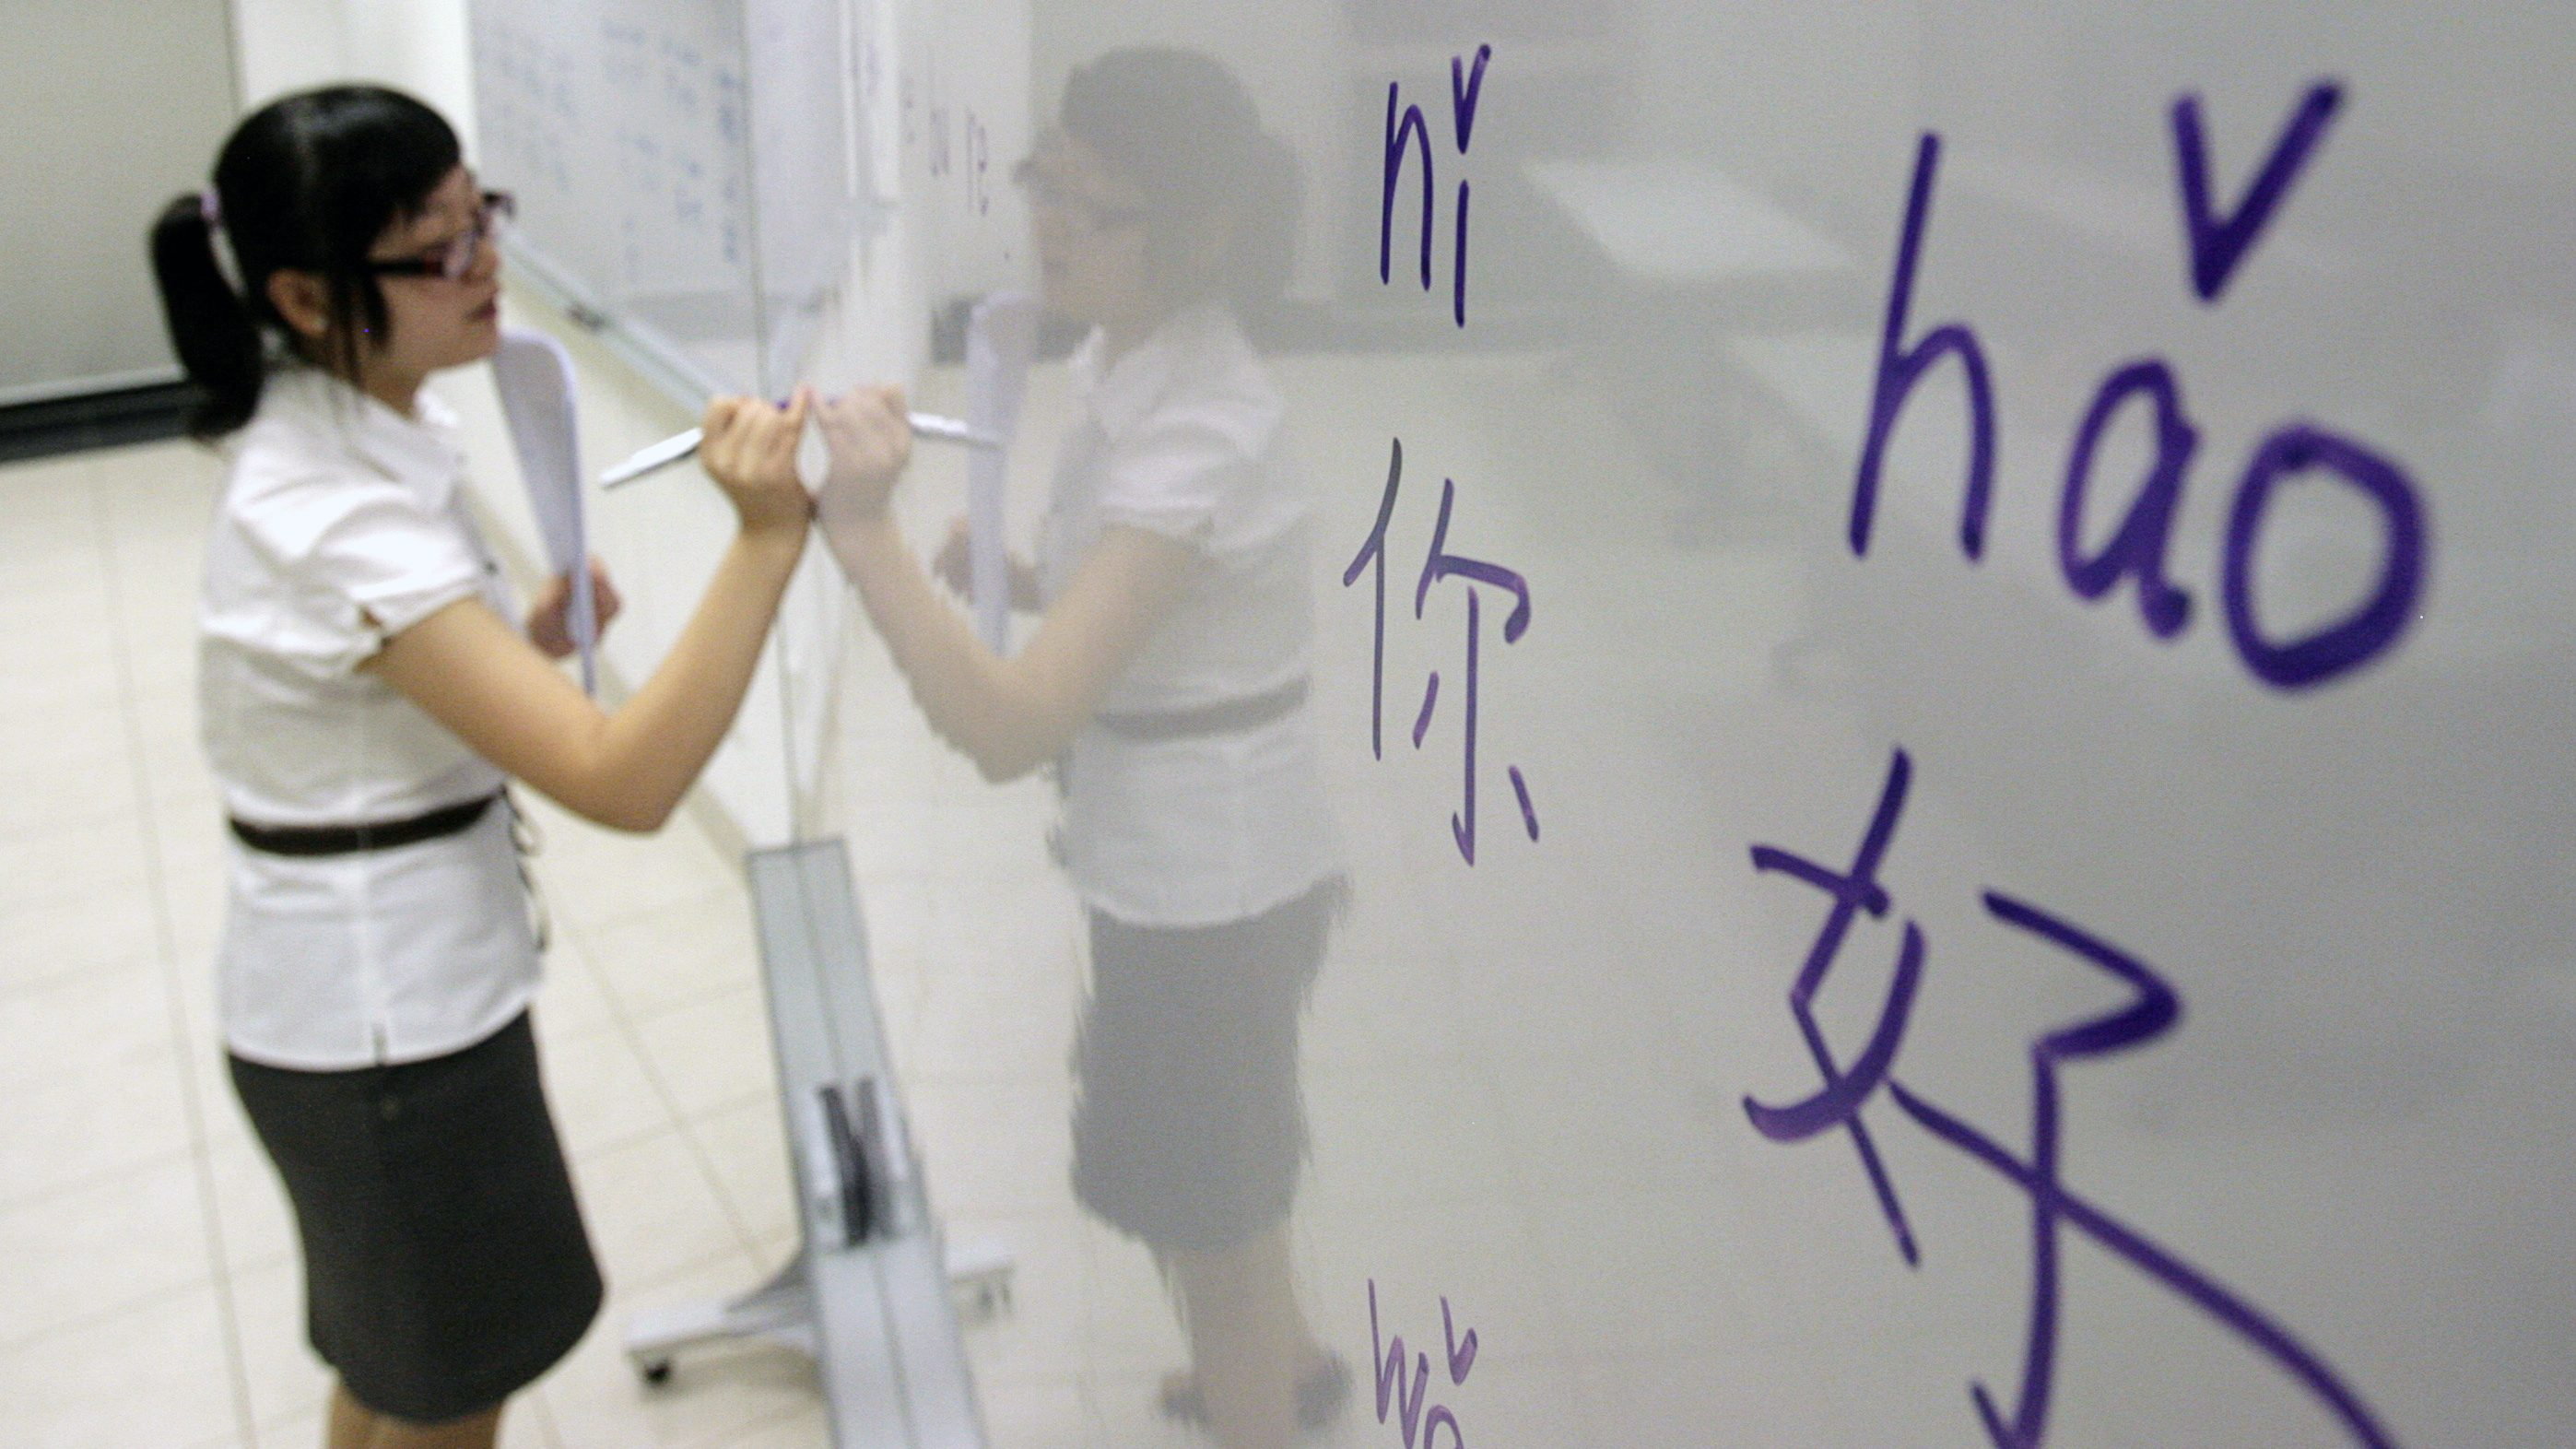 An instructor writes mandarin characters on a whiteboard at a night class for people learning mandarin as a second language in Singapore September 1, 2009. English has long united the ethnically diverse island-state but Singapore's leaders now foresee a time when Mandarin will be the country's dominant language and they are aggressively encouraging their people to become fluent in Chinese. To match feature